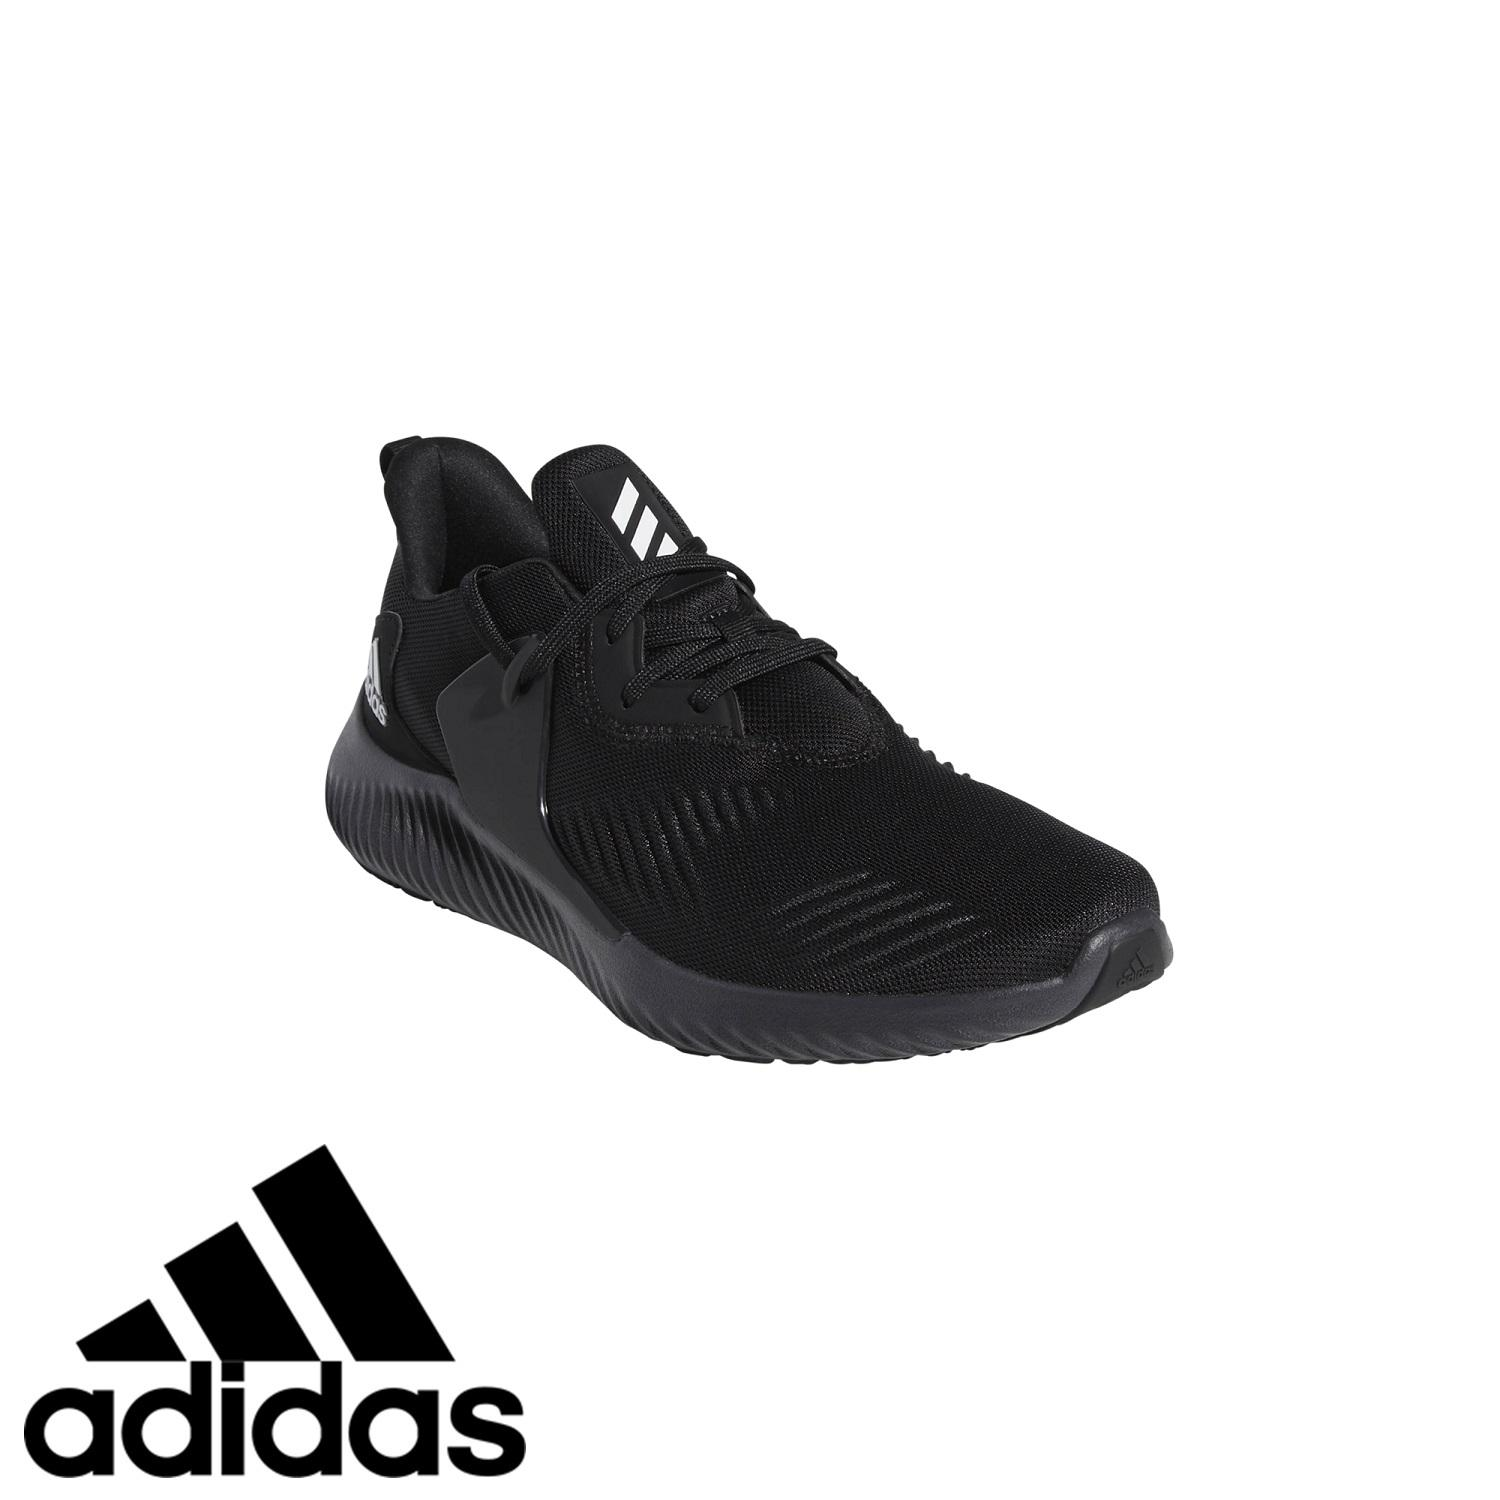 2c3f9b39008d3c Adidas Sports Shoes Philippines - Adidas Sports Clothing for sale ...